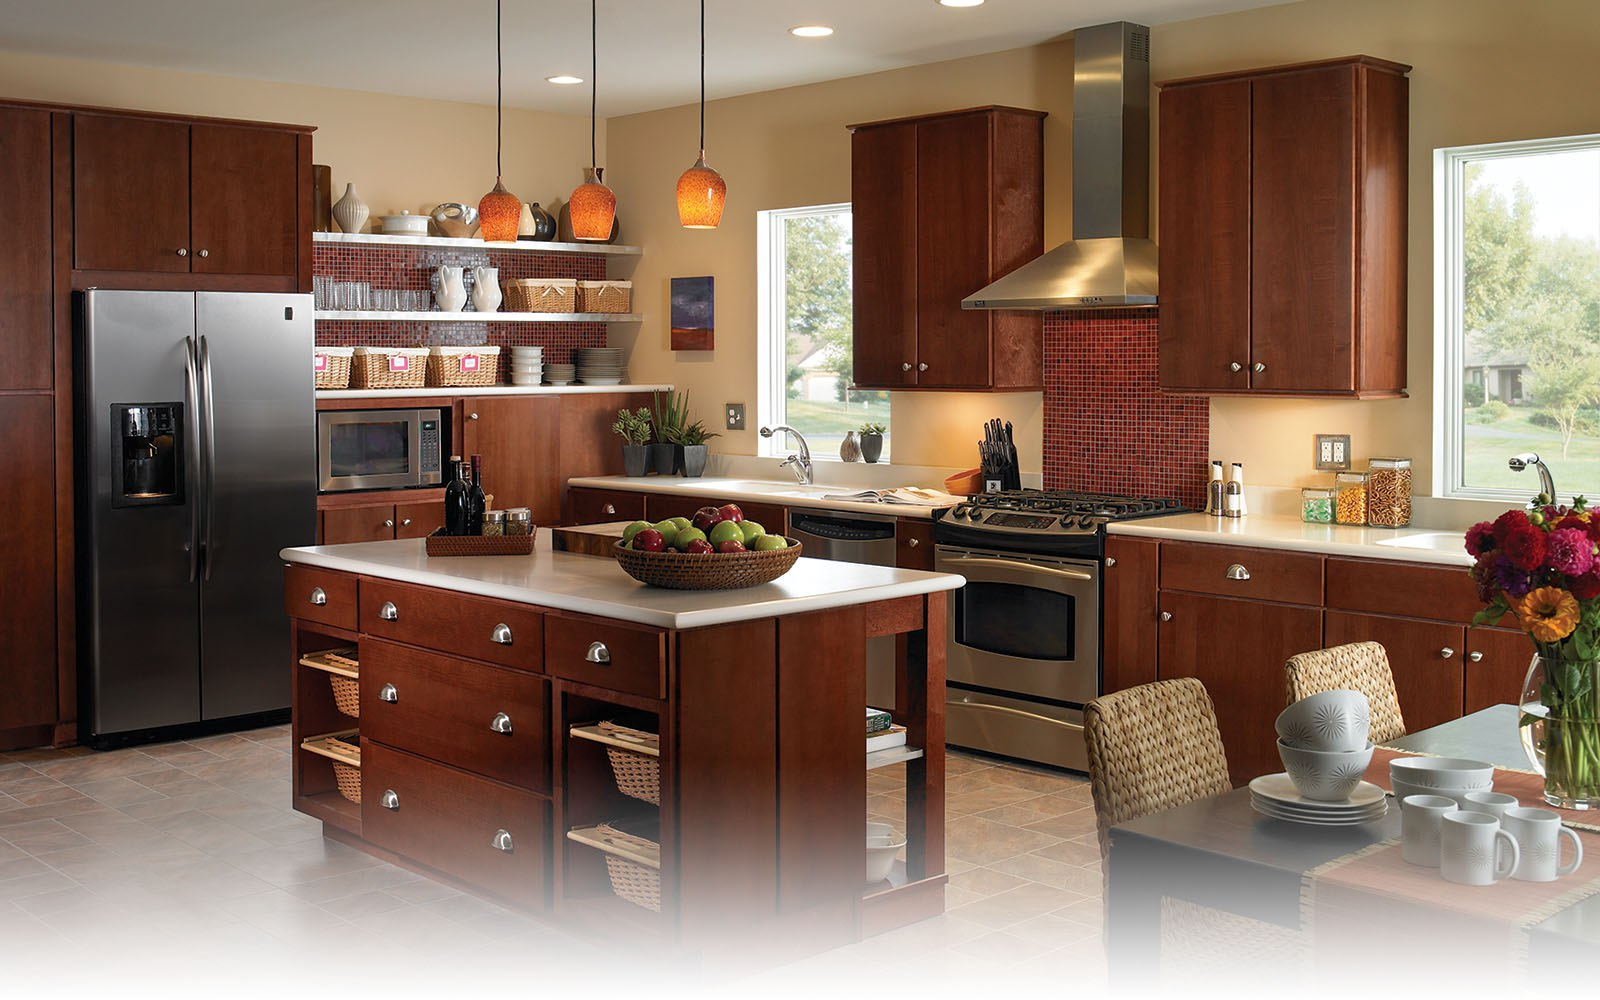 kitchen remodels kitchen design kitchen remodels kitchen cabinets. Interior Design Ideas. Home Design Ideas